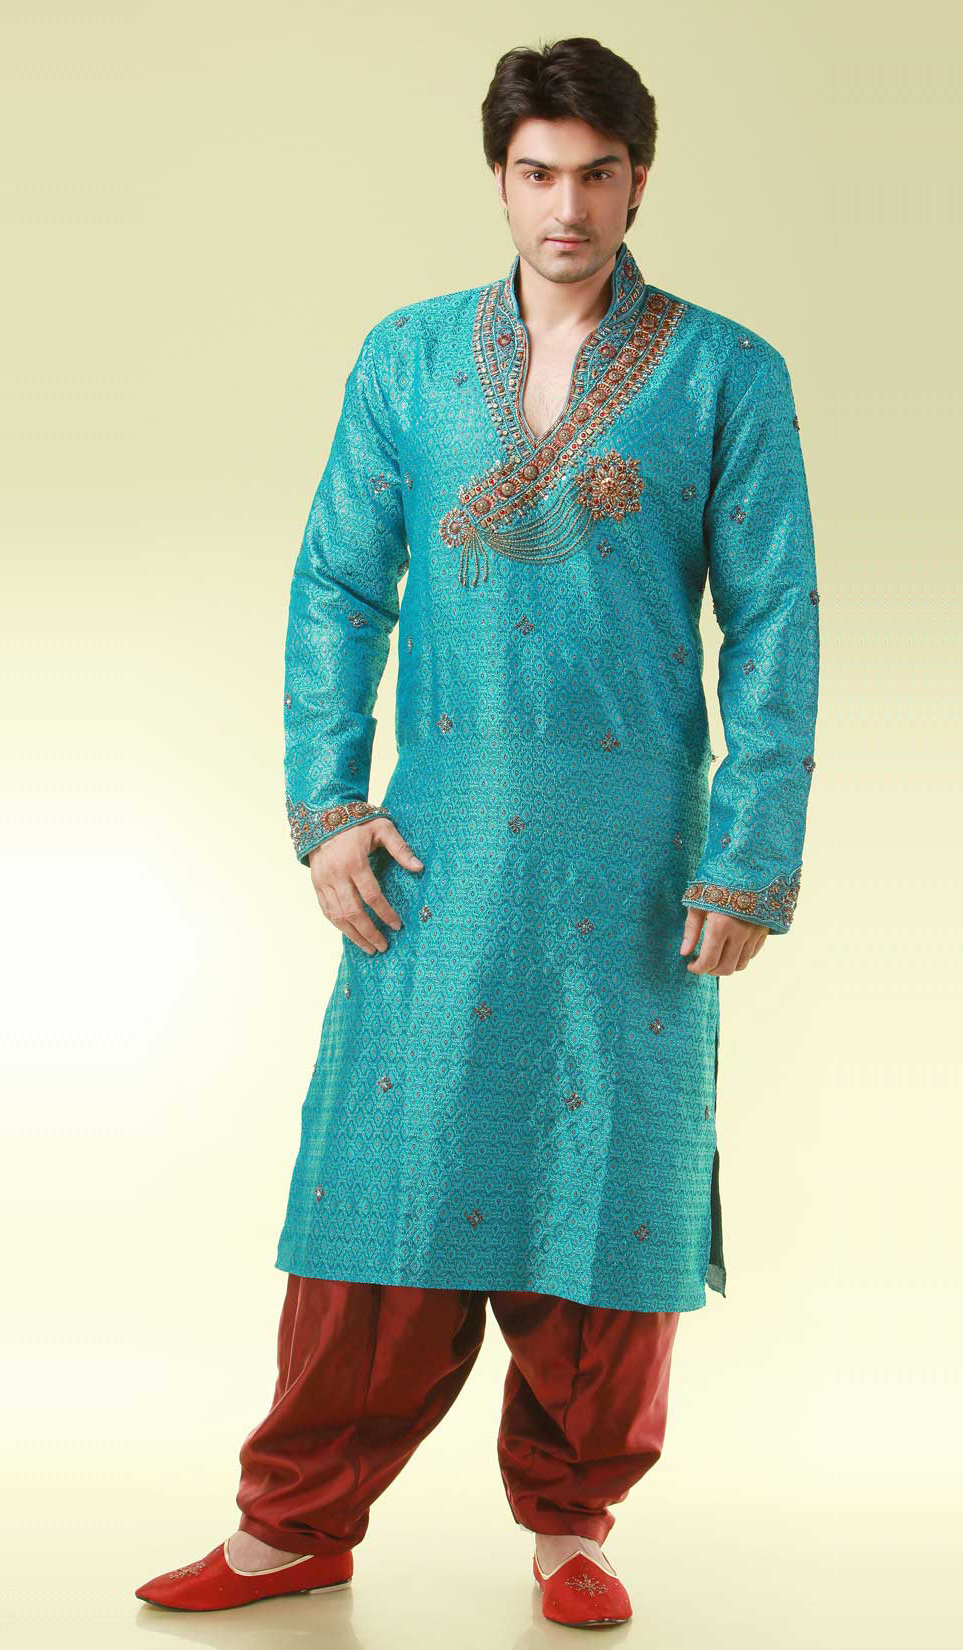 Wedding Season is On: Best Options to Dress For the Dashing Indian ...